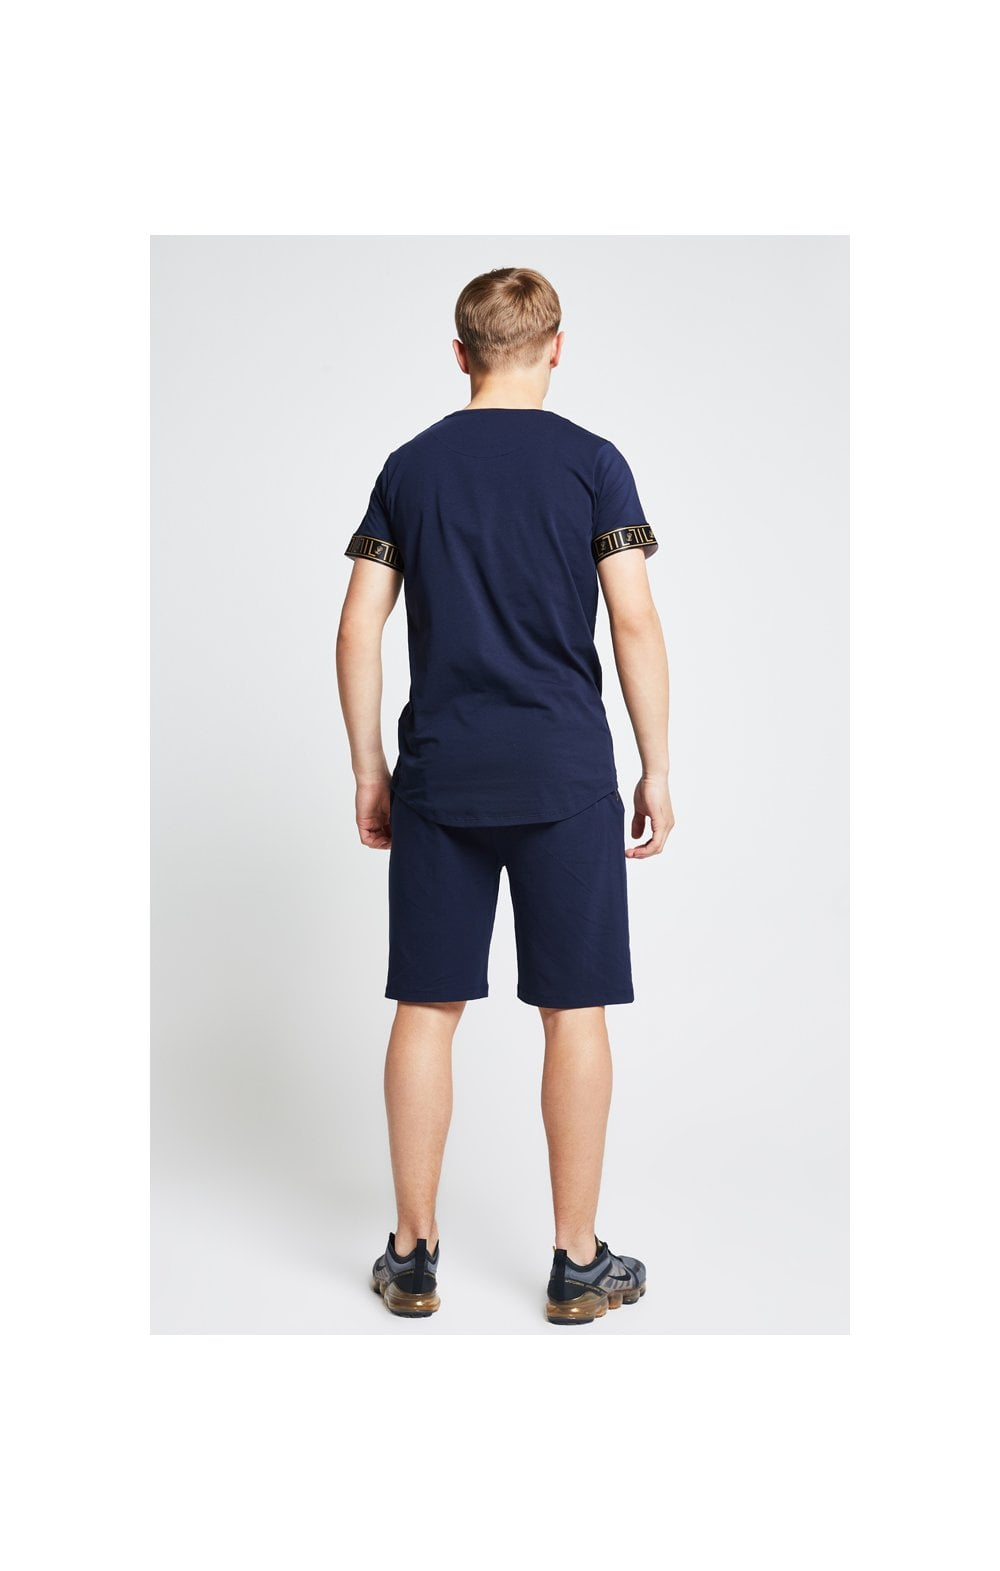 Illusive London Tech Tee - Navy (5)